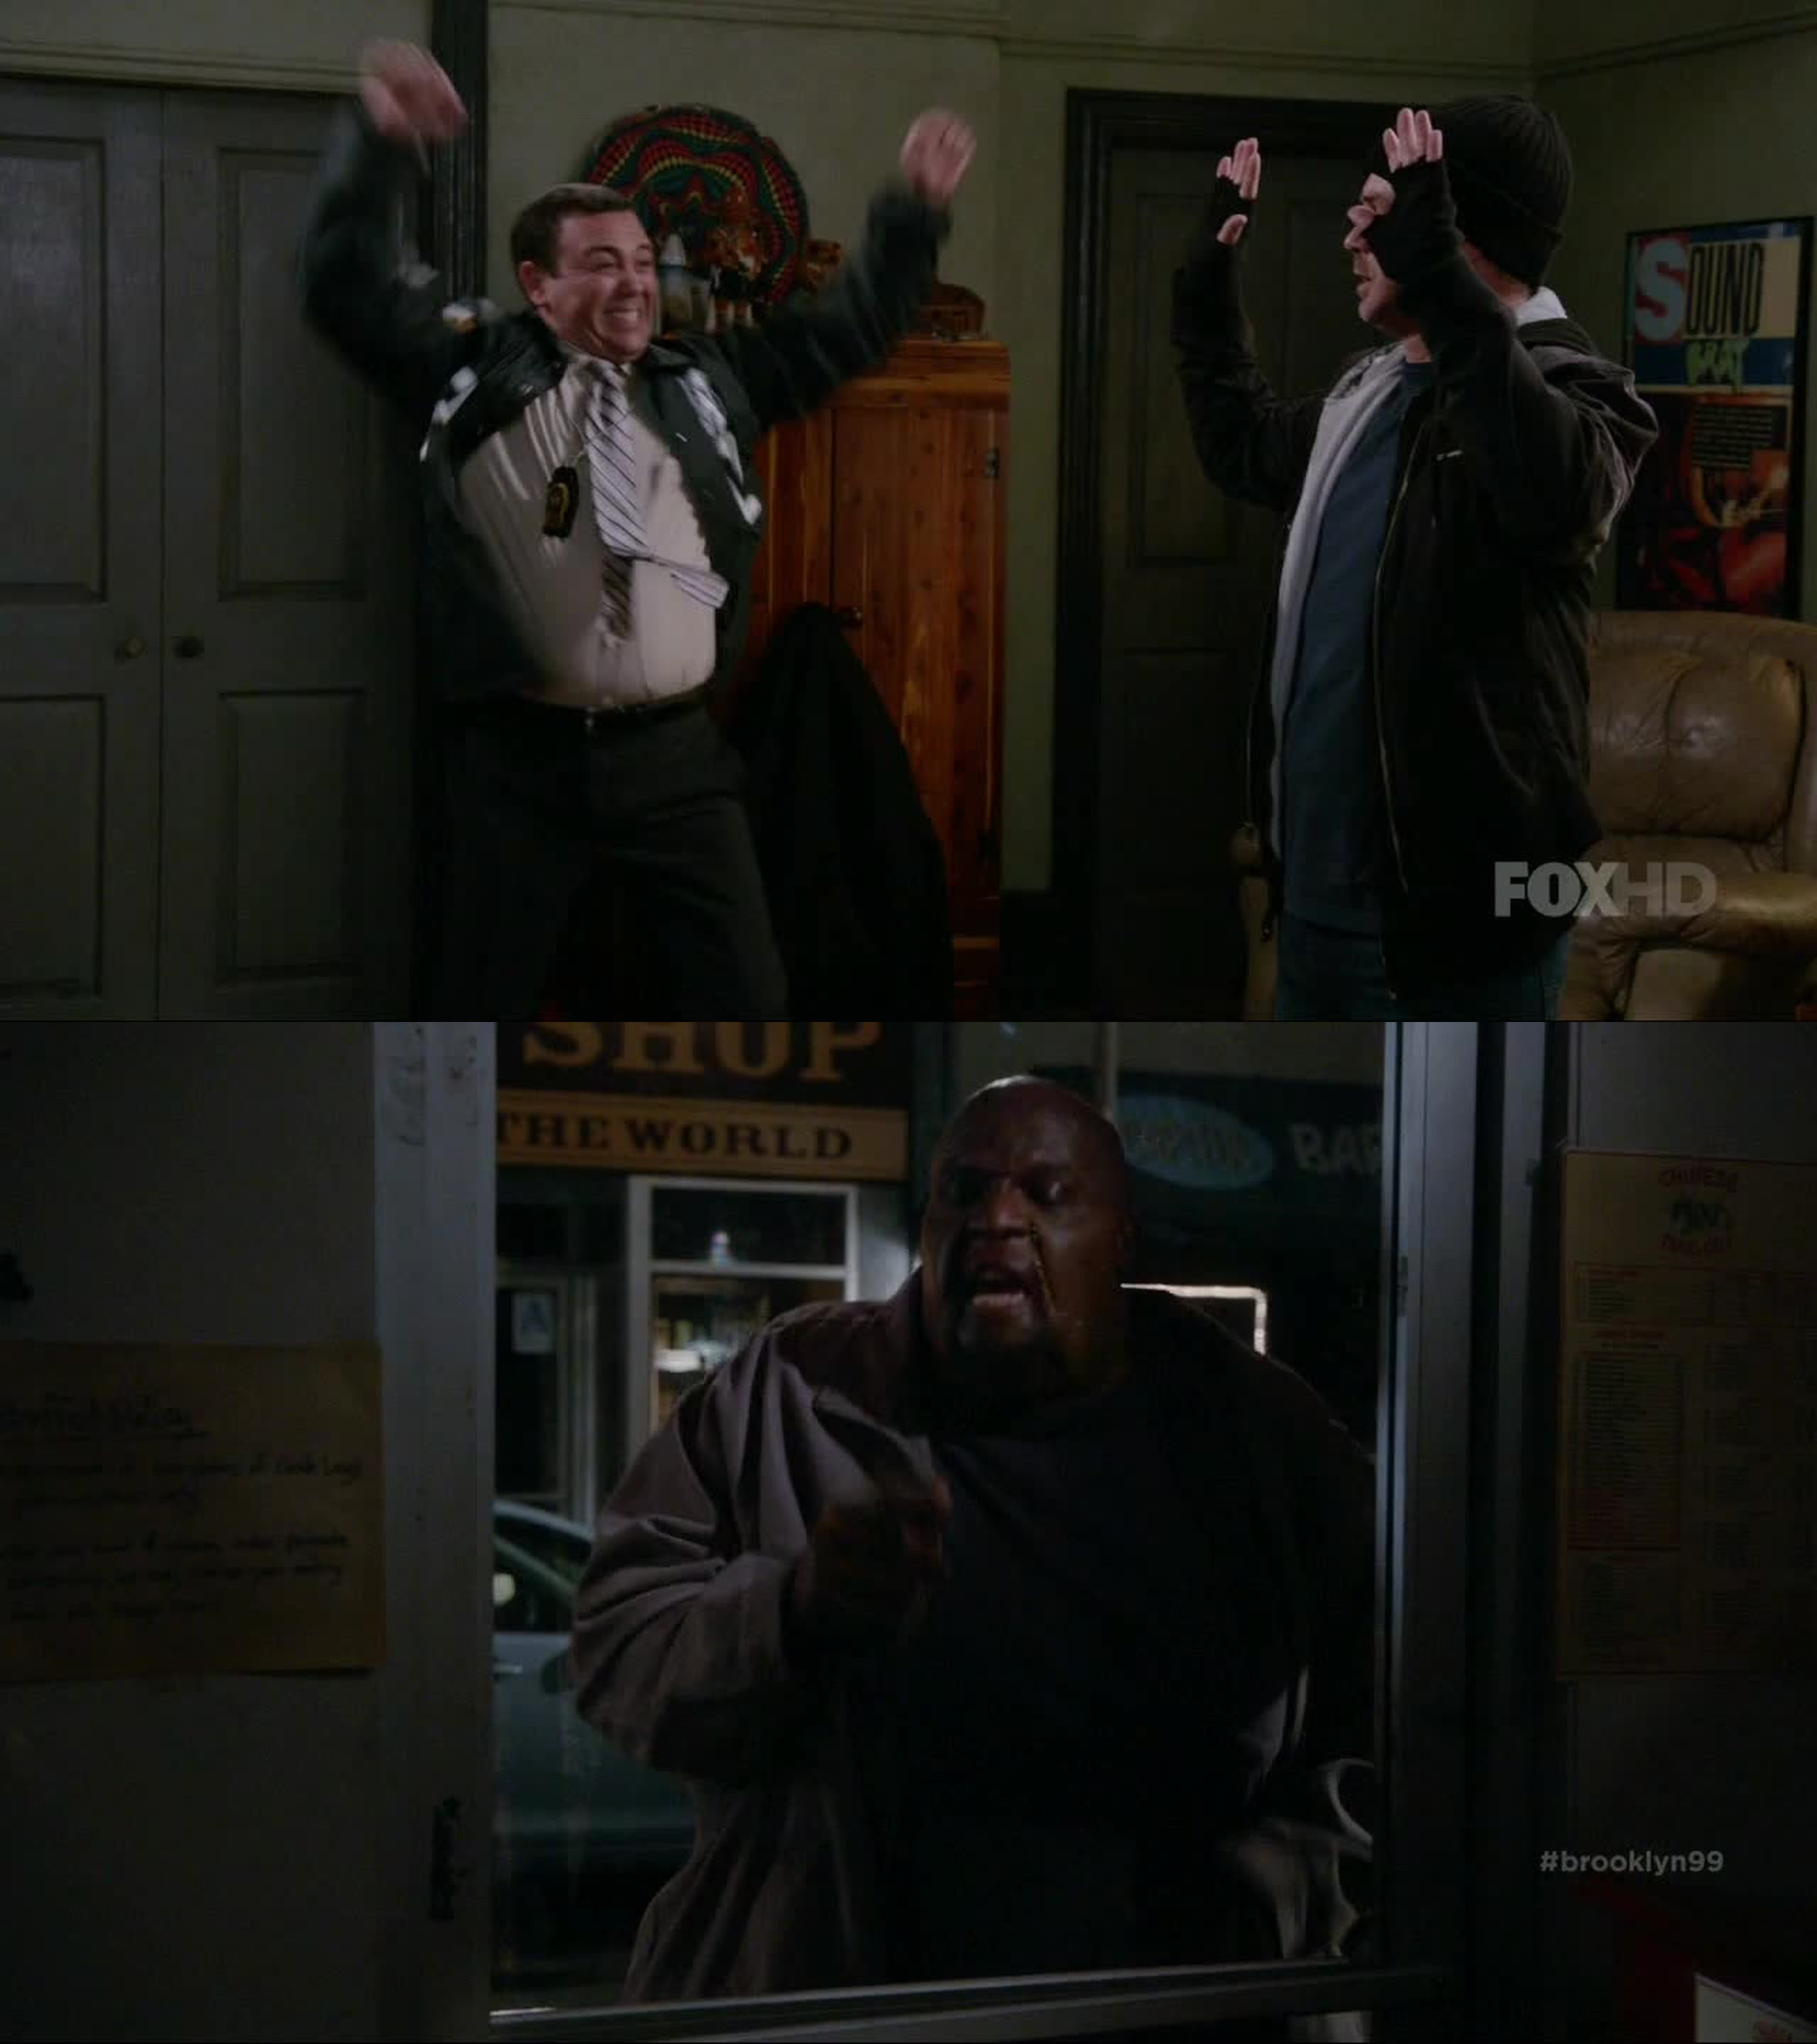 Charles is way too awesome for his own good and I never thought I'd ever see a fat Terry Crews. Another great episode!